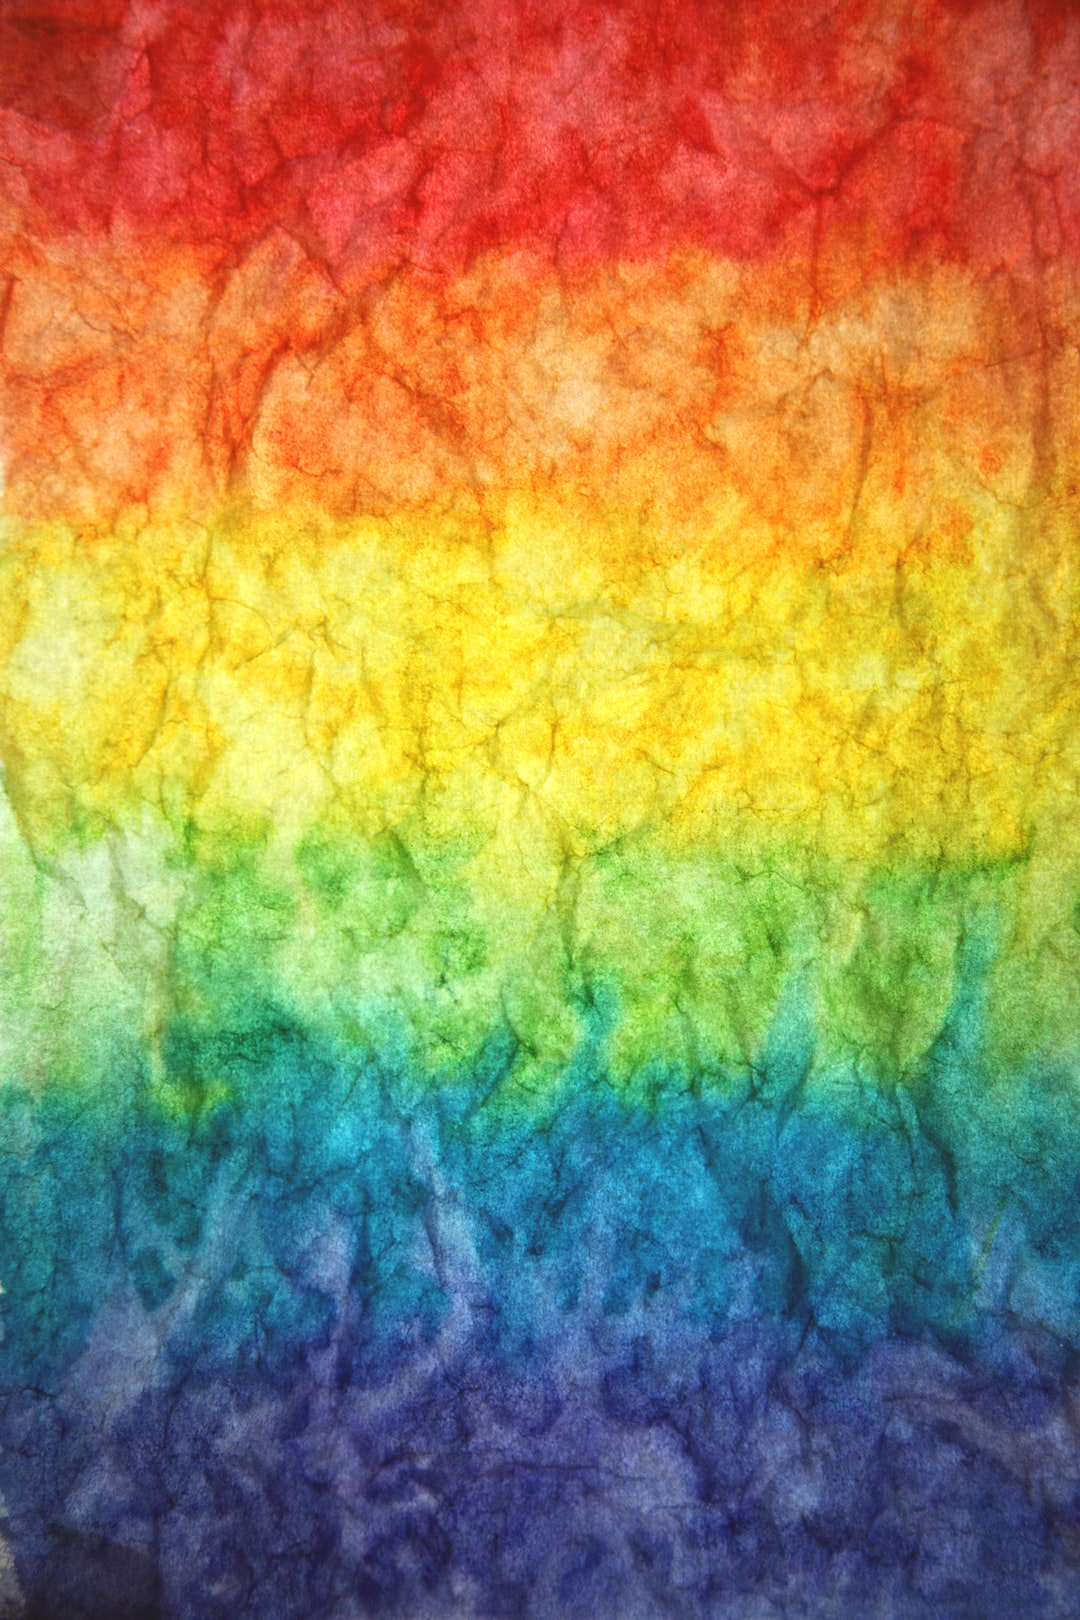 Textured paper watercolor paint rainbow background.